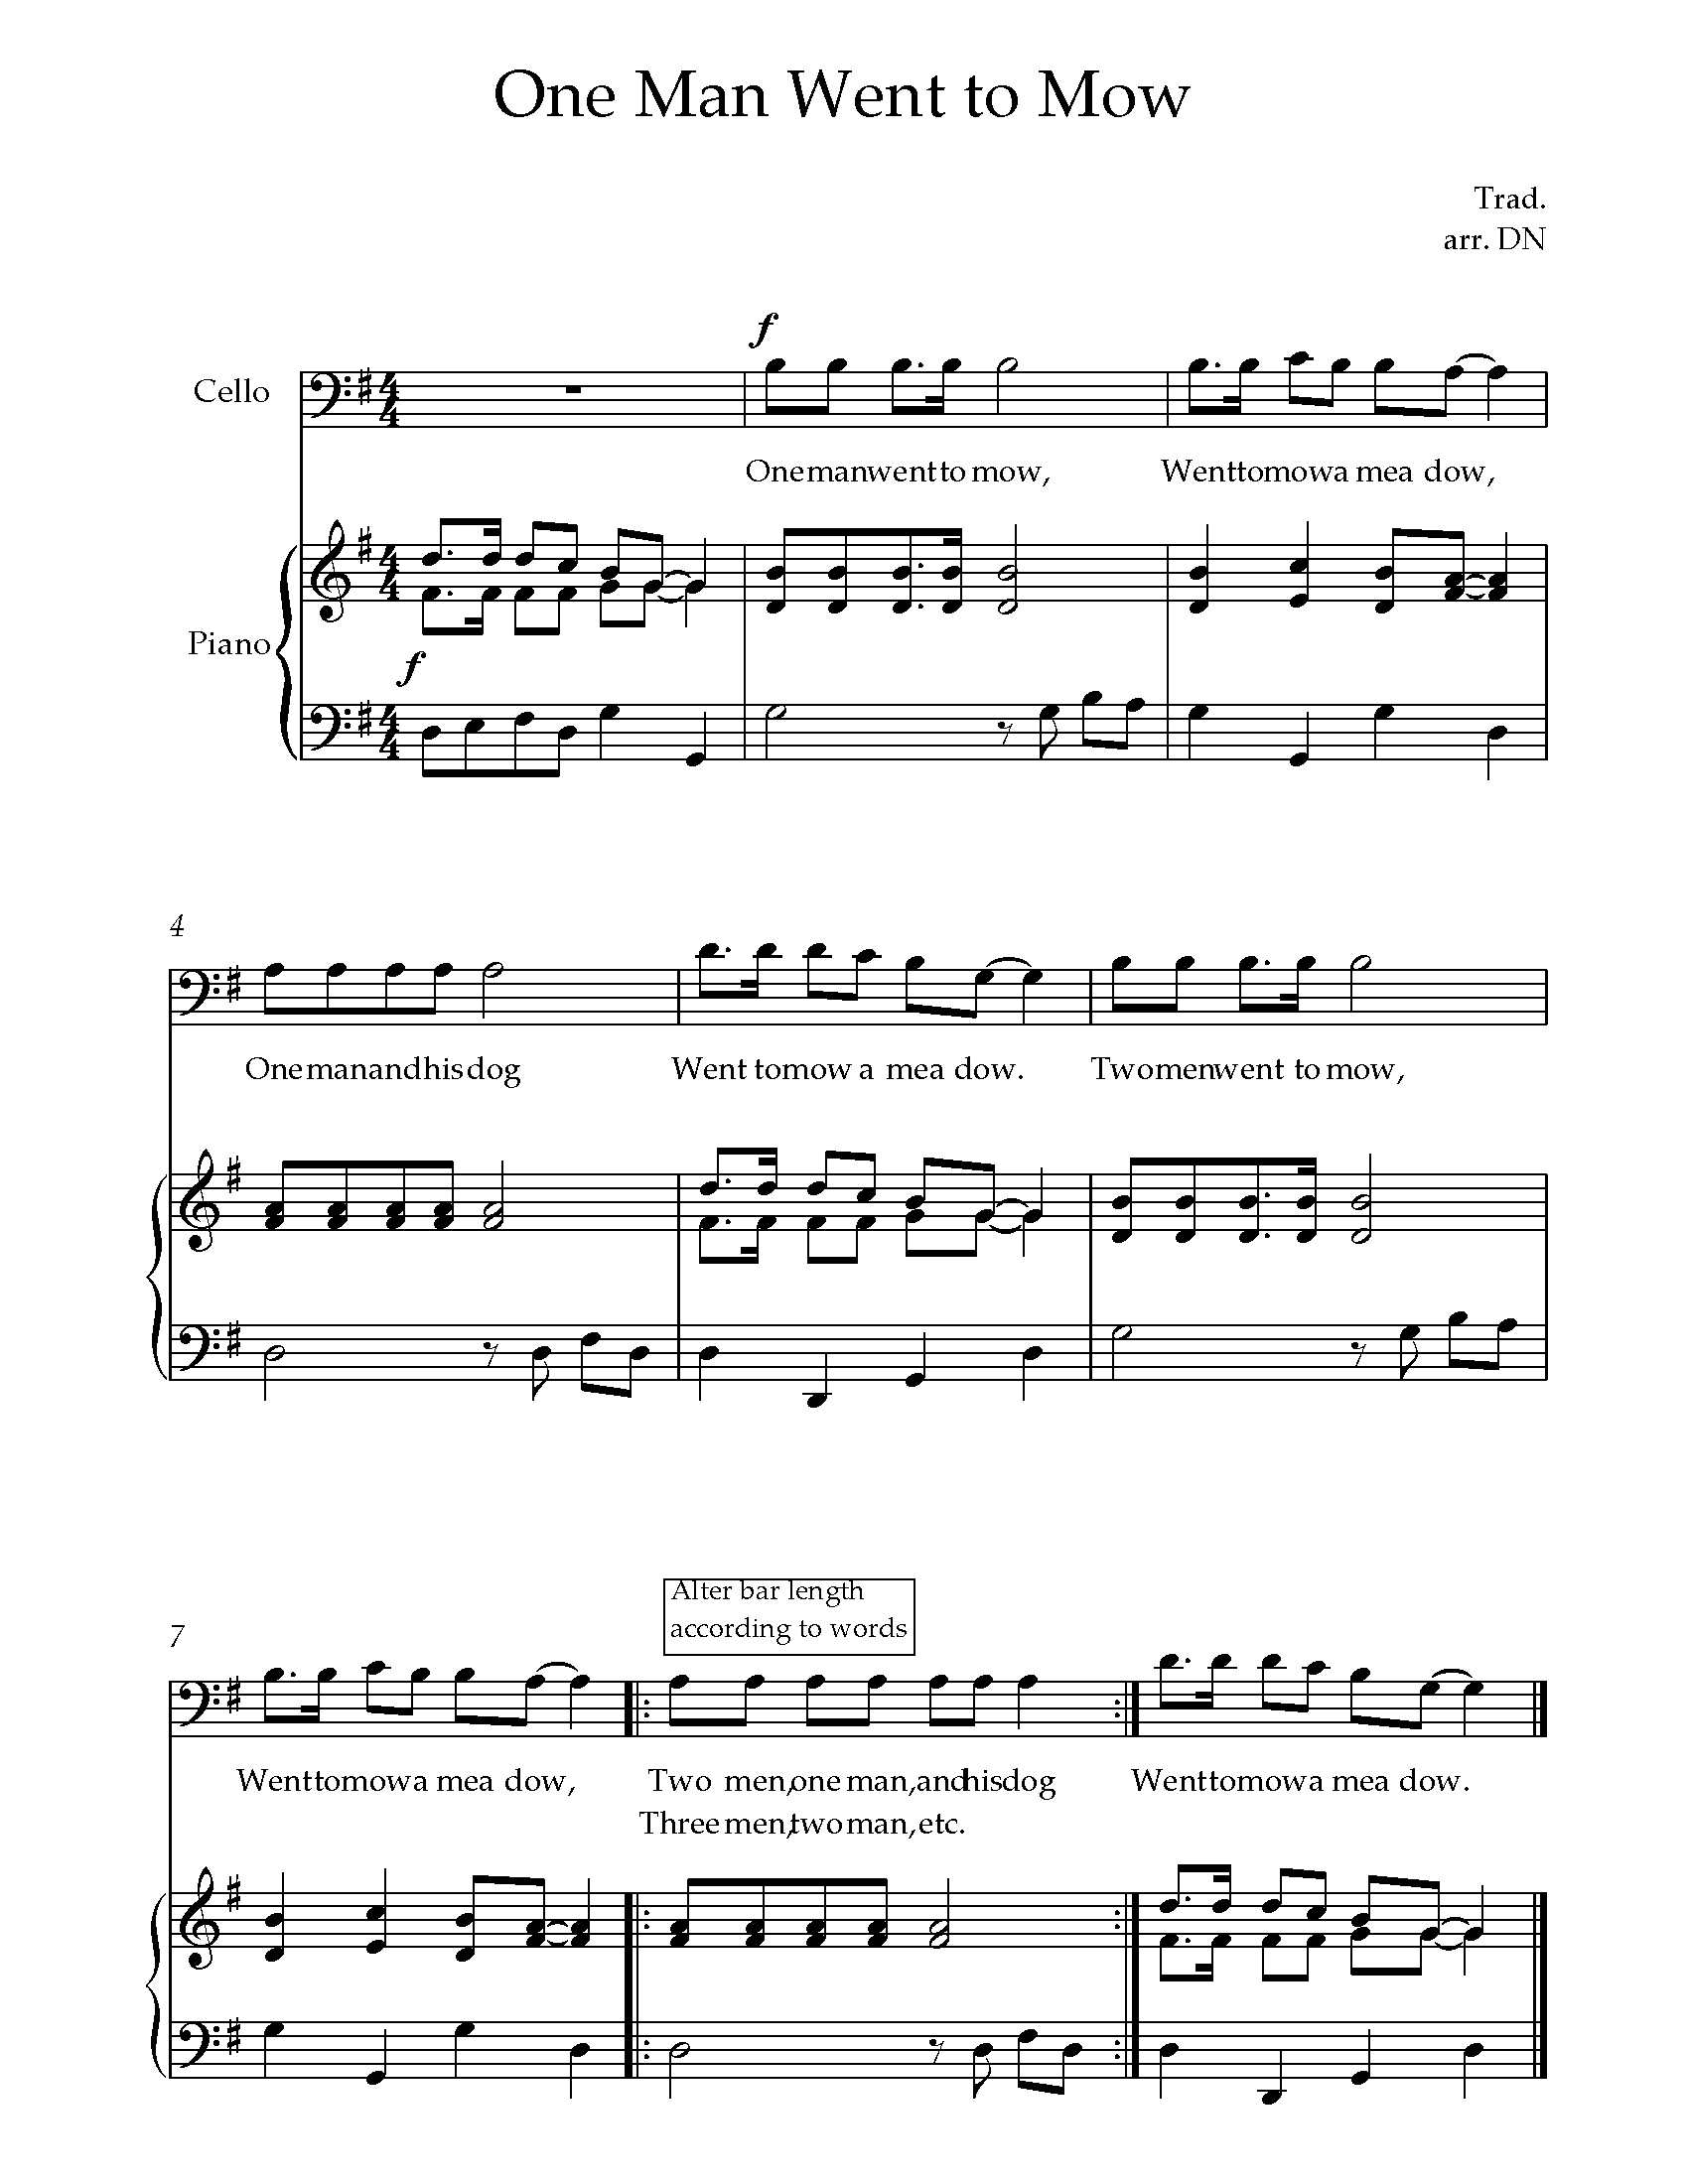 one man went to mow sheet music for cello - 8notes.com  8notes